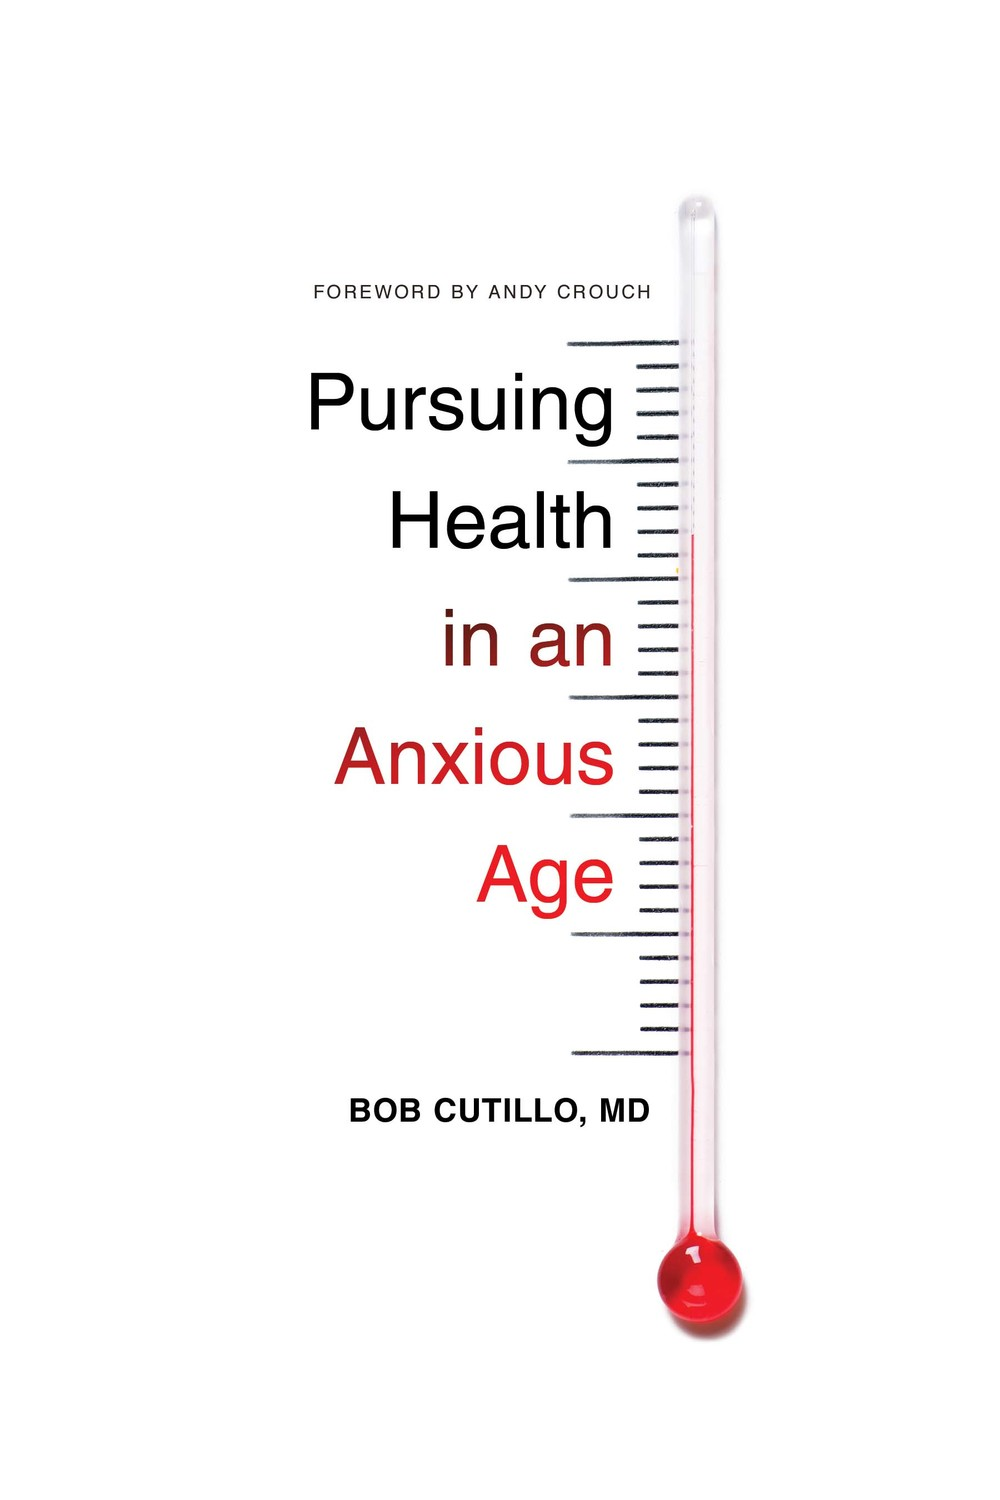 Pursuing Health in an Anxious Age